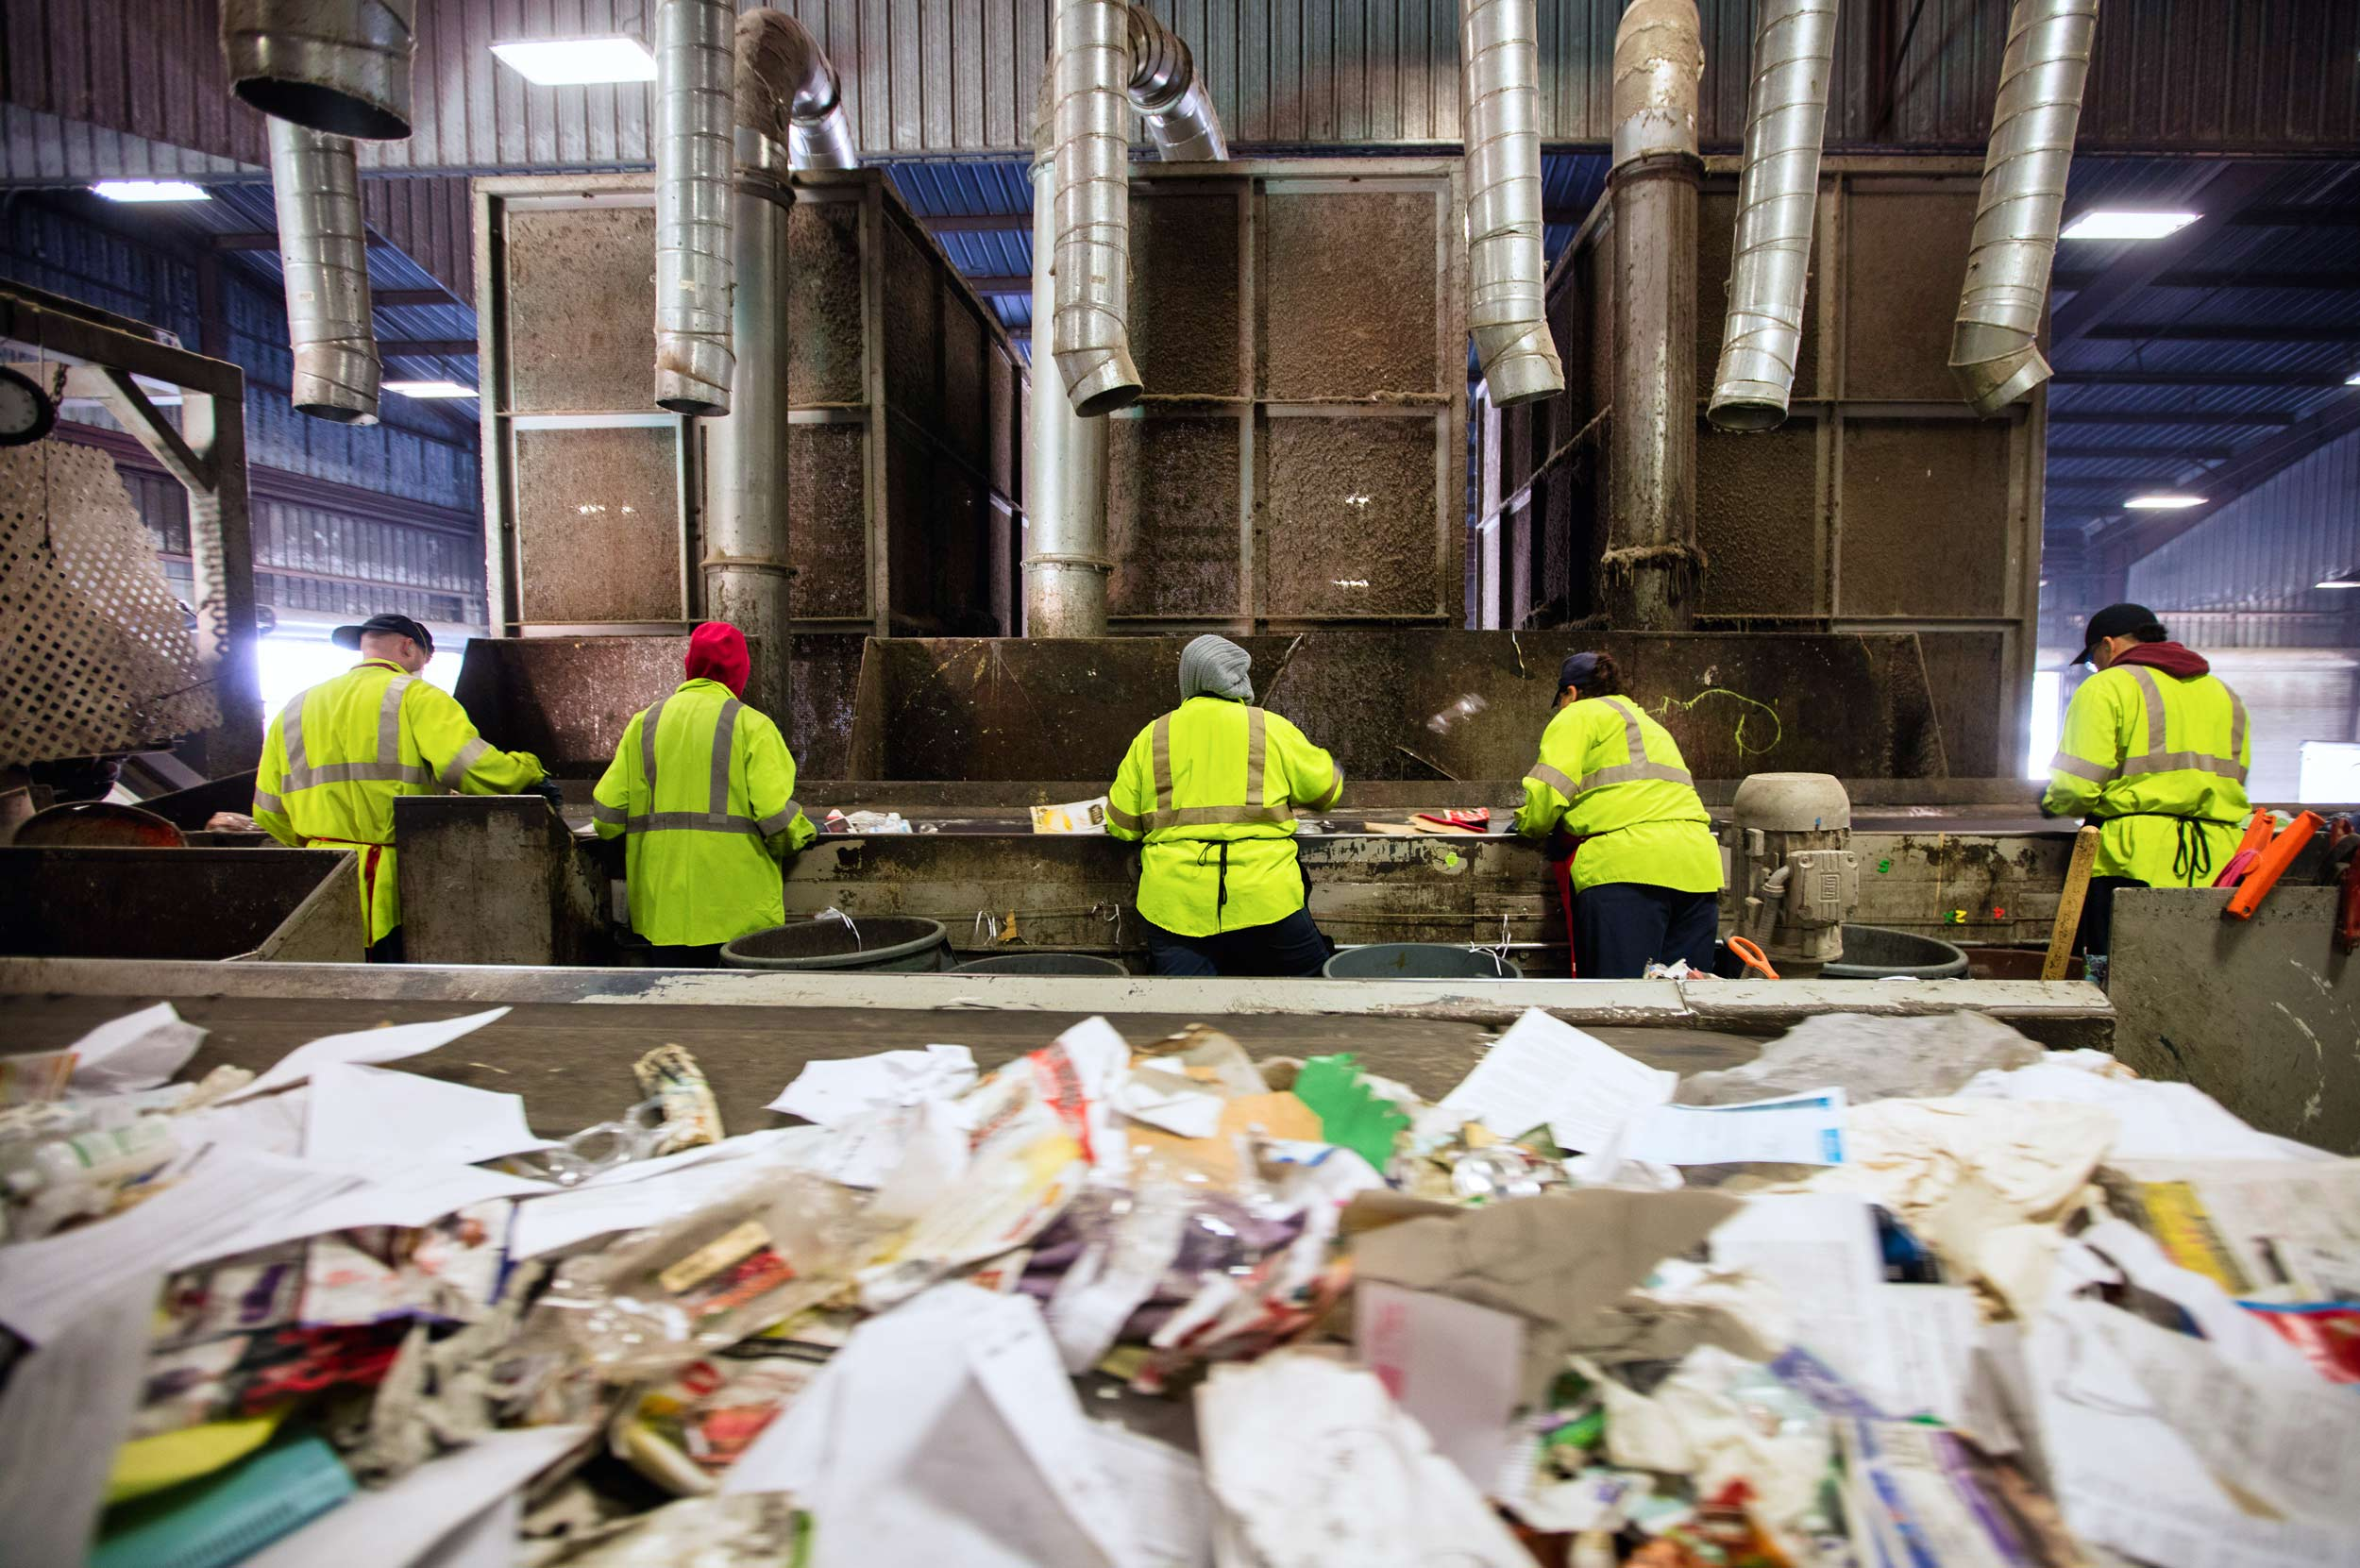 A Group of Workers Sort Recycling